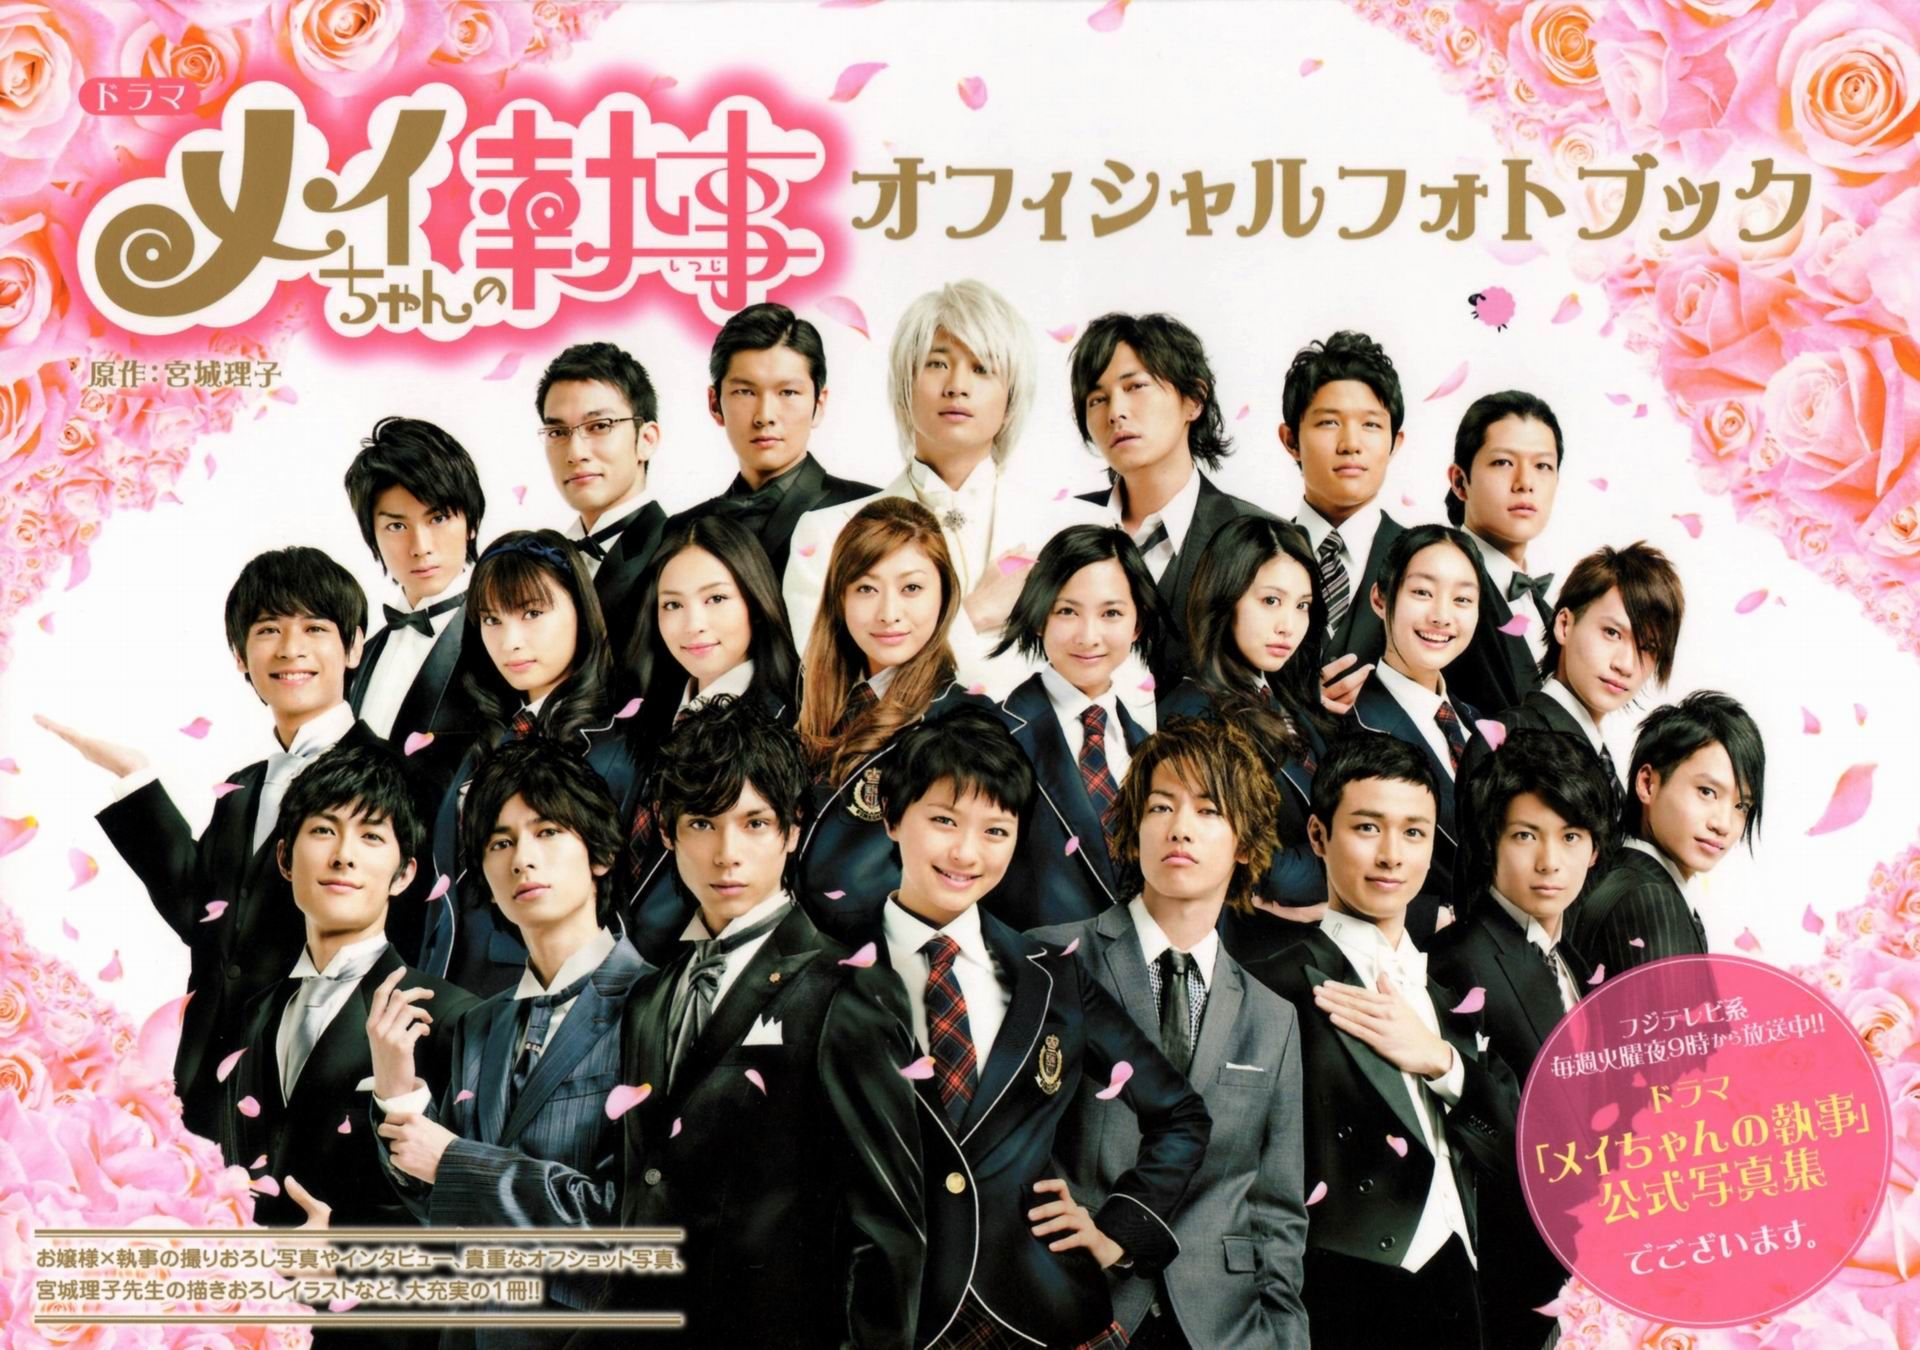 25 Anime or Manga turned into Live Action Dramas (met